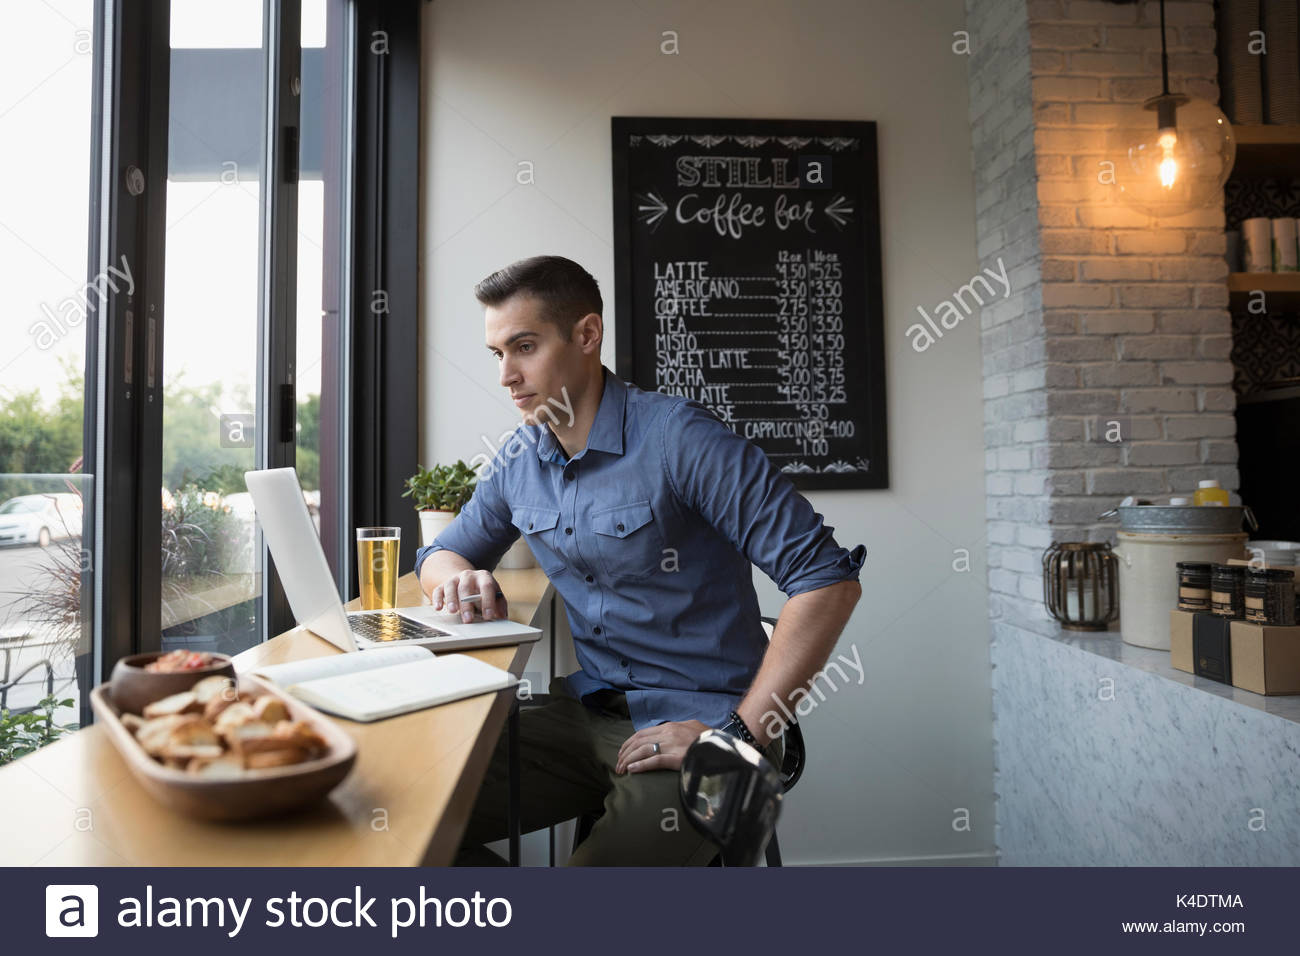 Man drinking beer and using laptop at cafe window - Stock Image